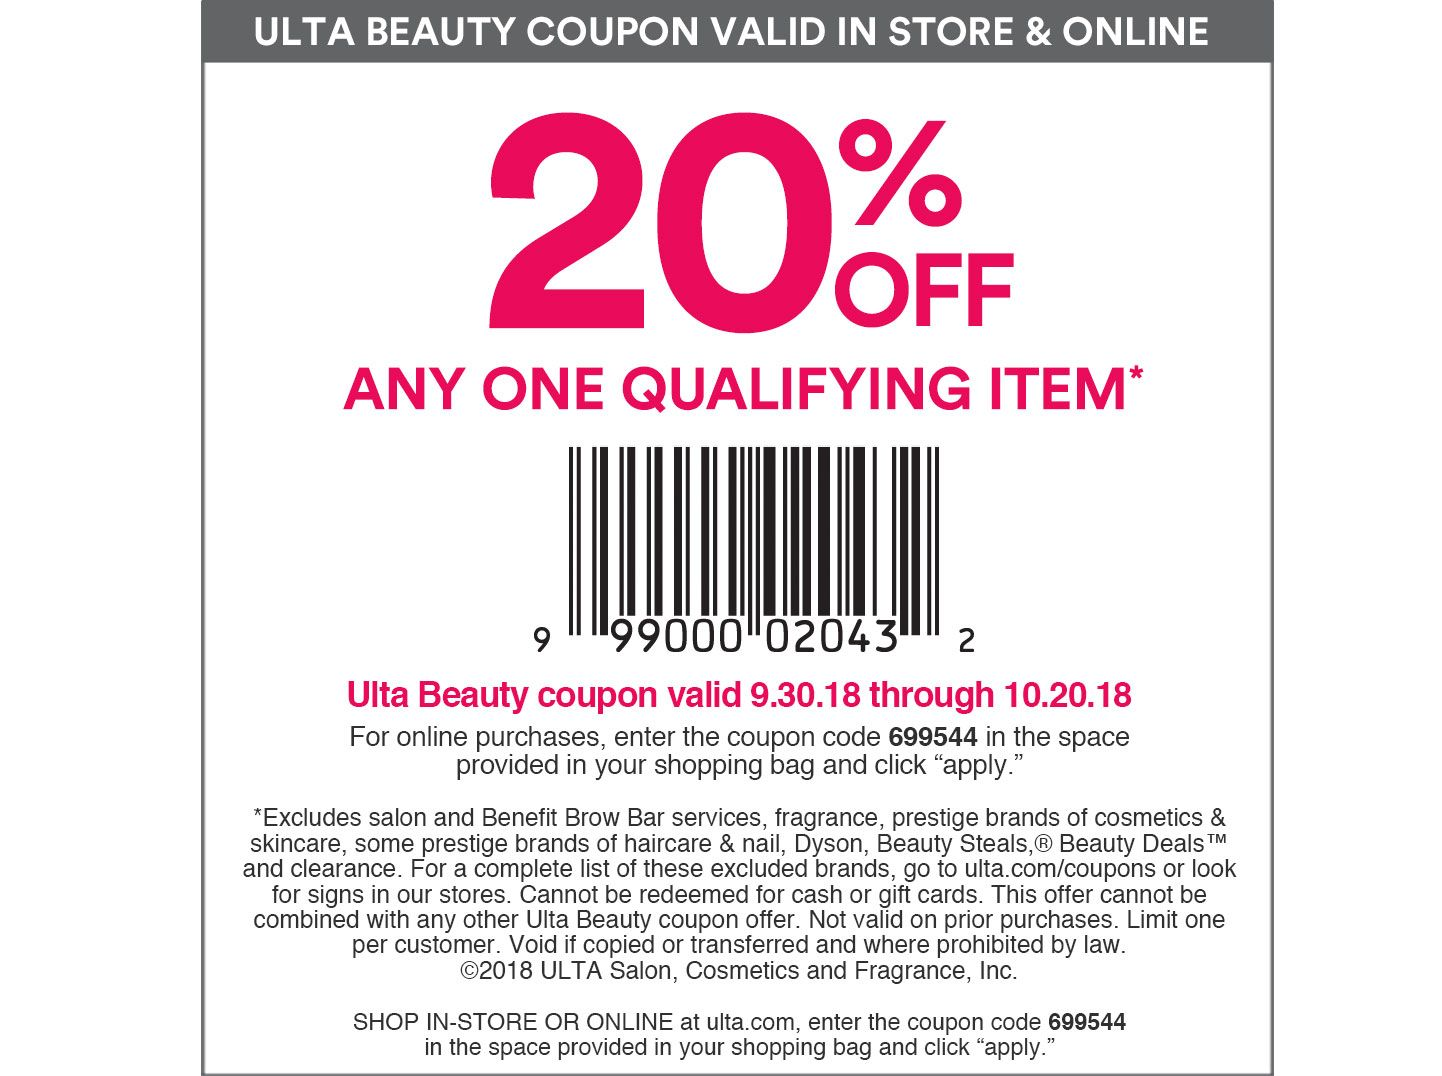 ulta coupon code 20% Off Any One Qualifying Item + More